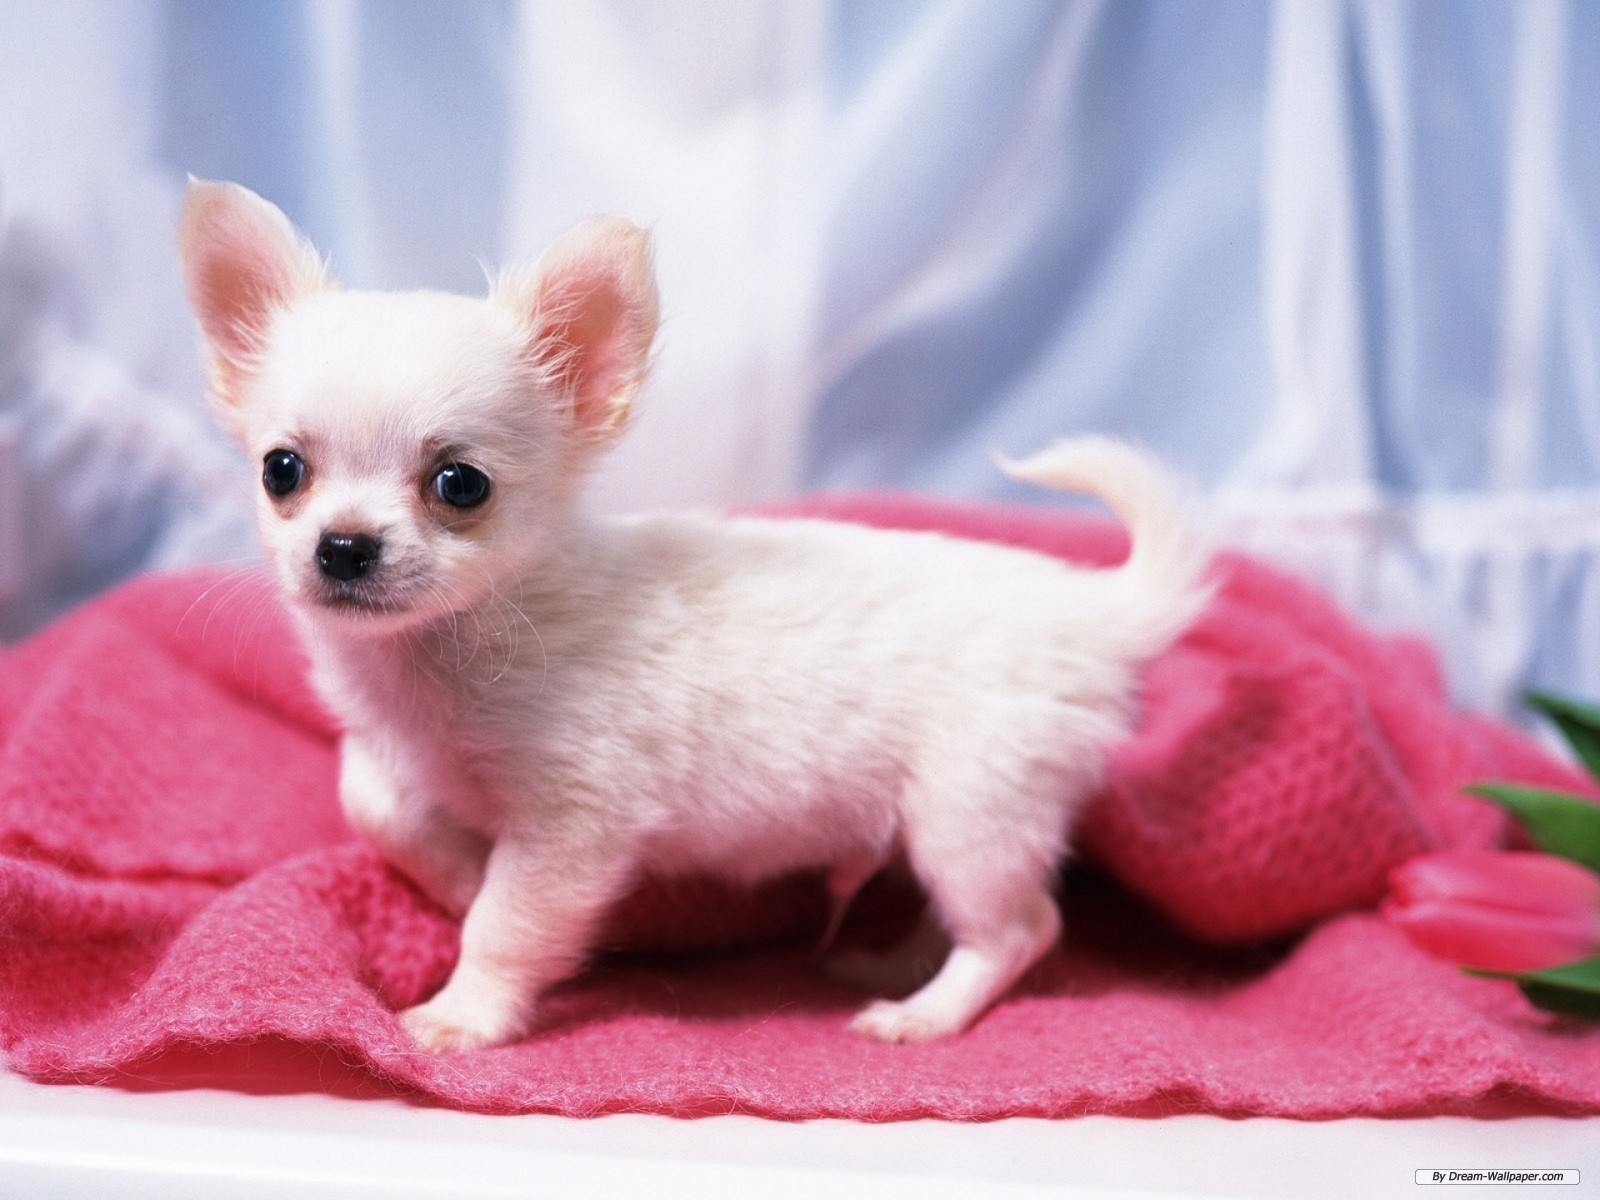 Gorgeous Chihuahua - Chihuahuas Wallpaper (16750836) - Fanpop fanclubs